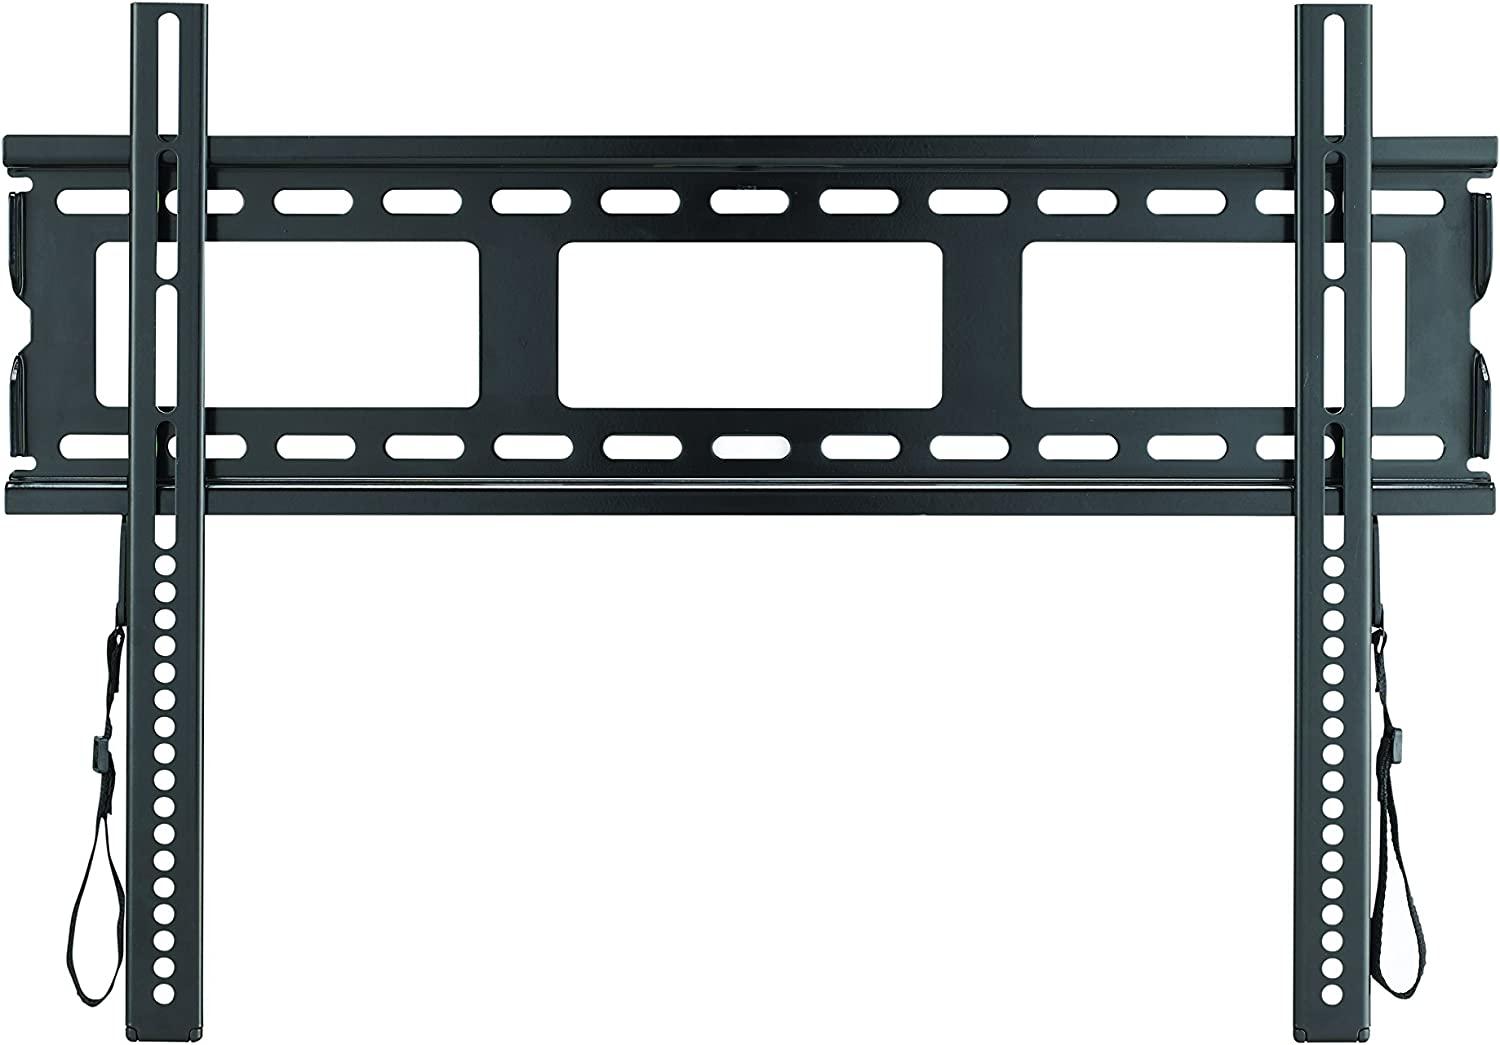 Best Wall Mount For 65 inch Samsung TV